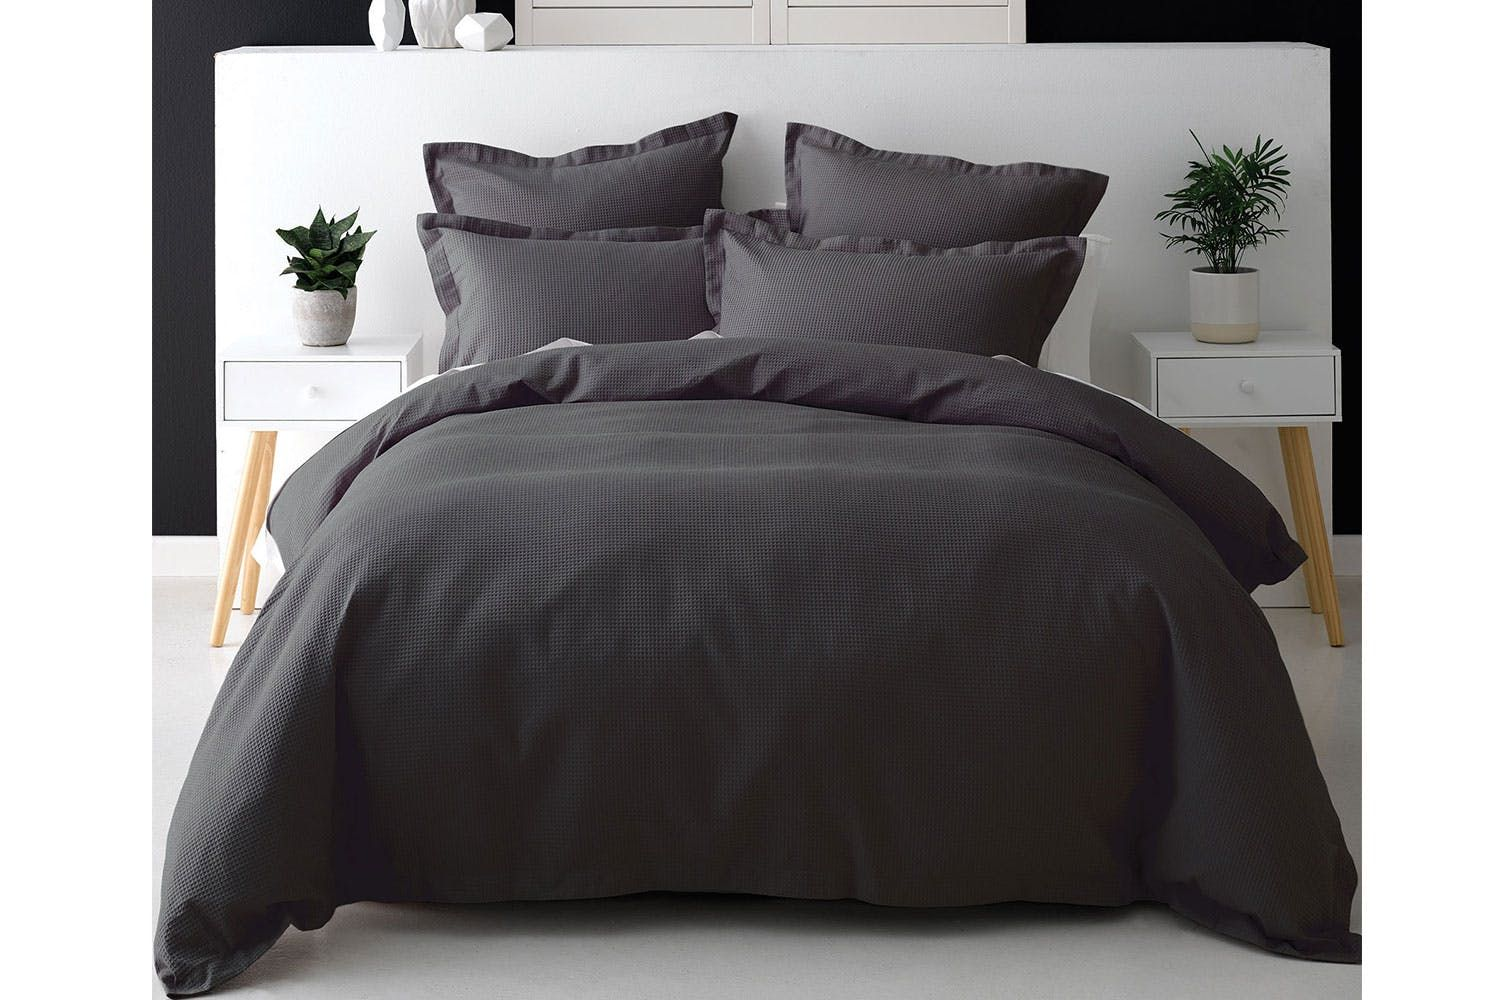 Nova Waffle Charcoal Duvet Cover Set By Savona Duvet Covers